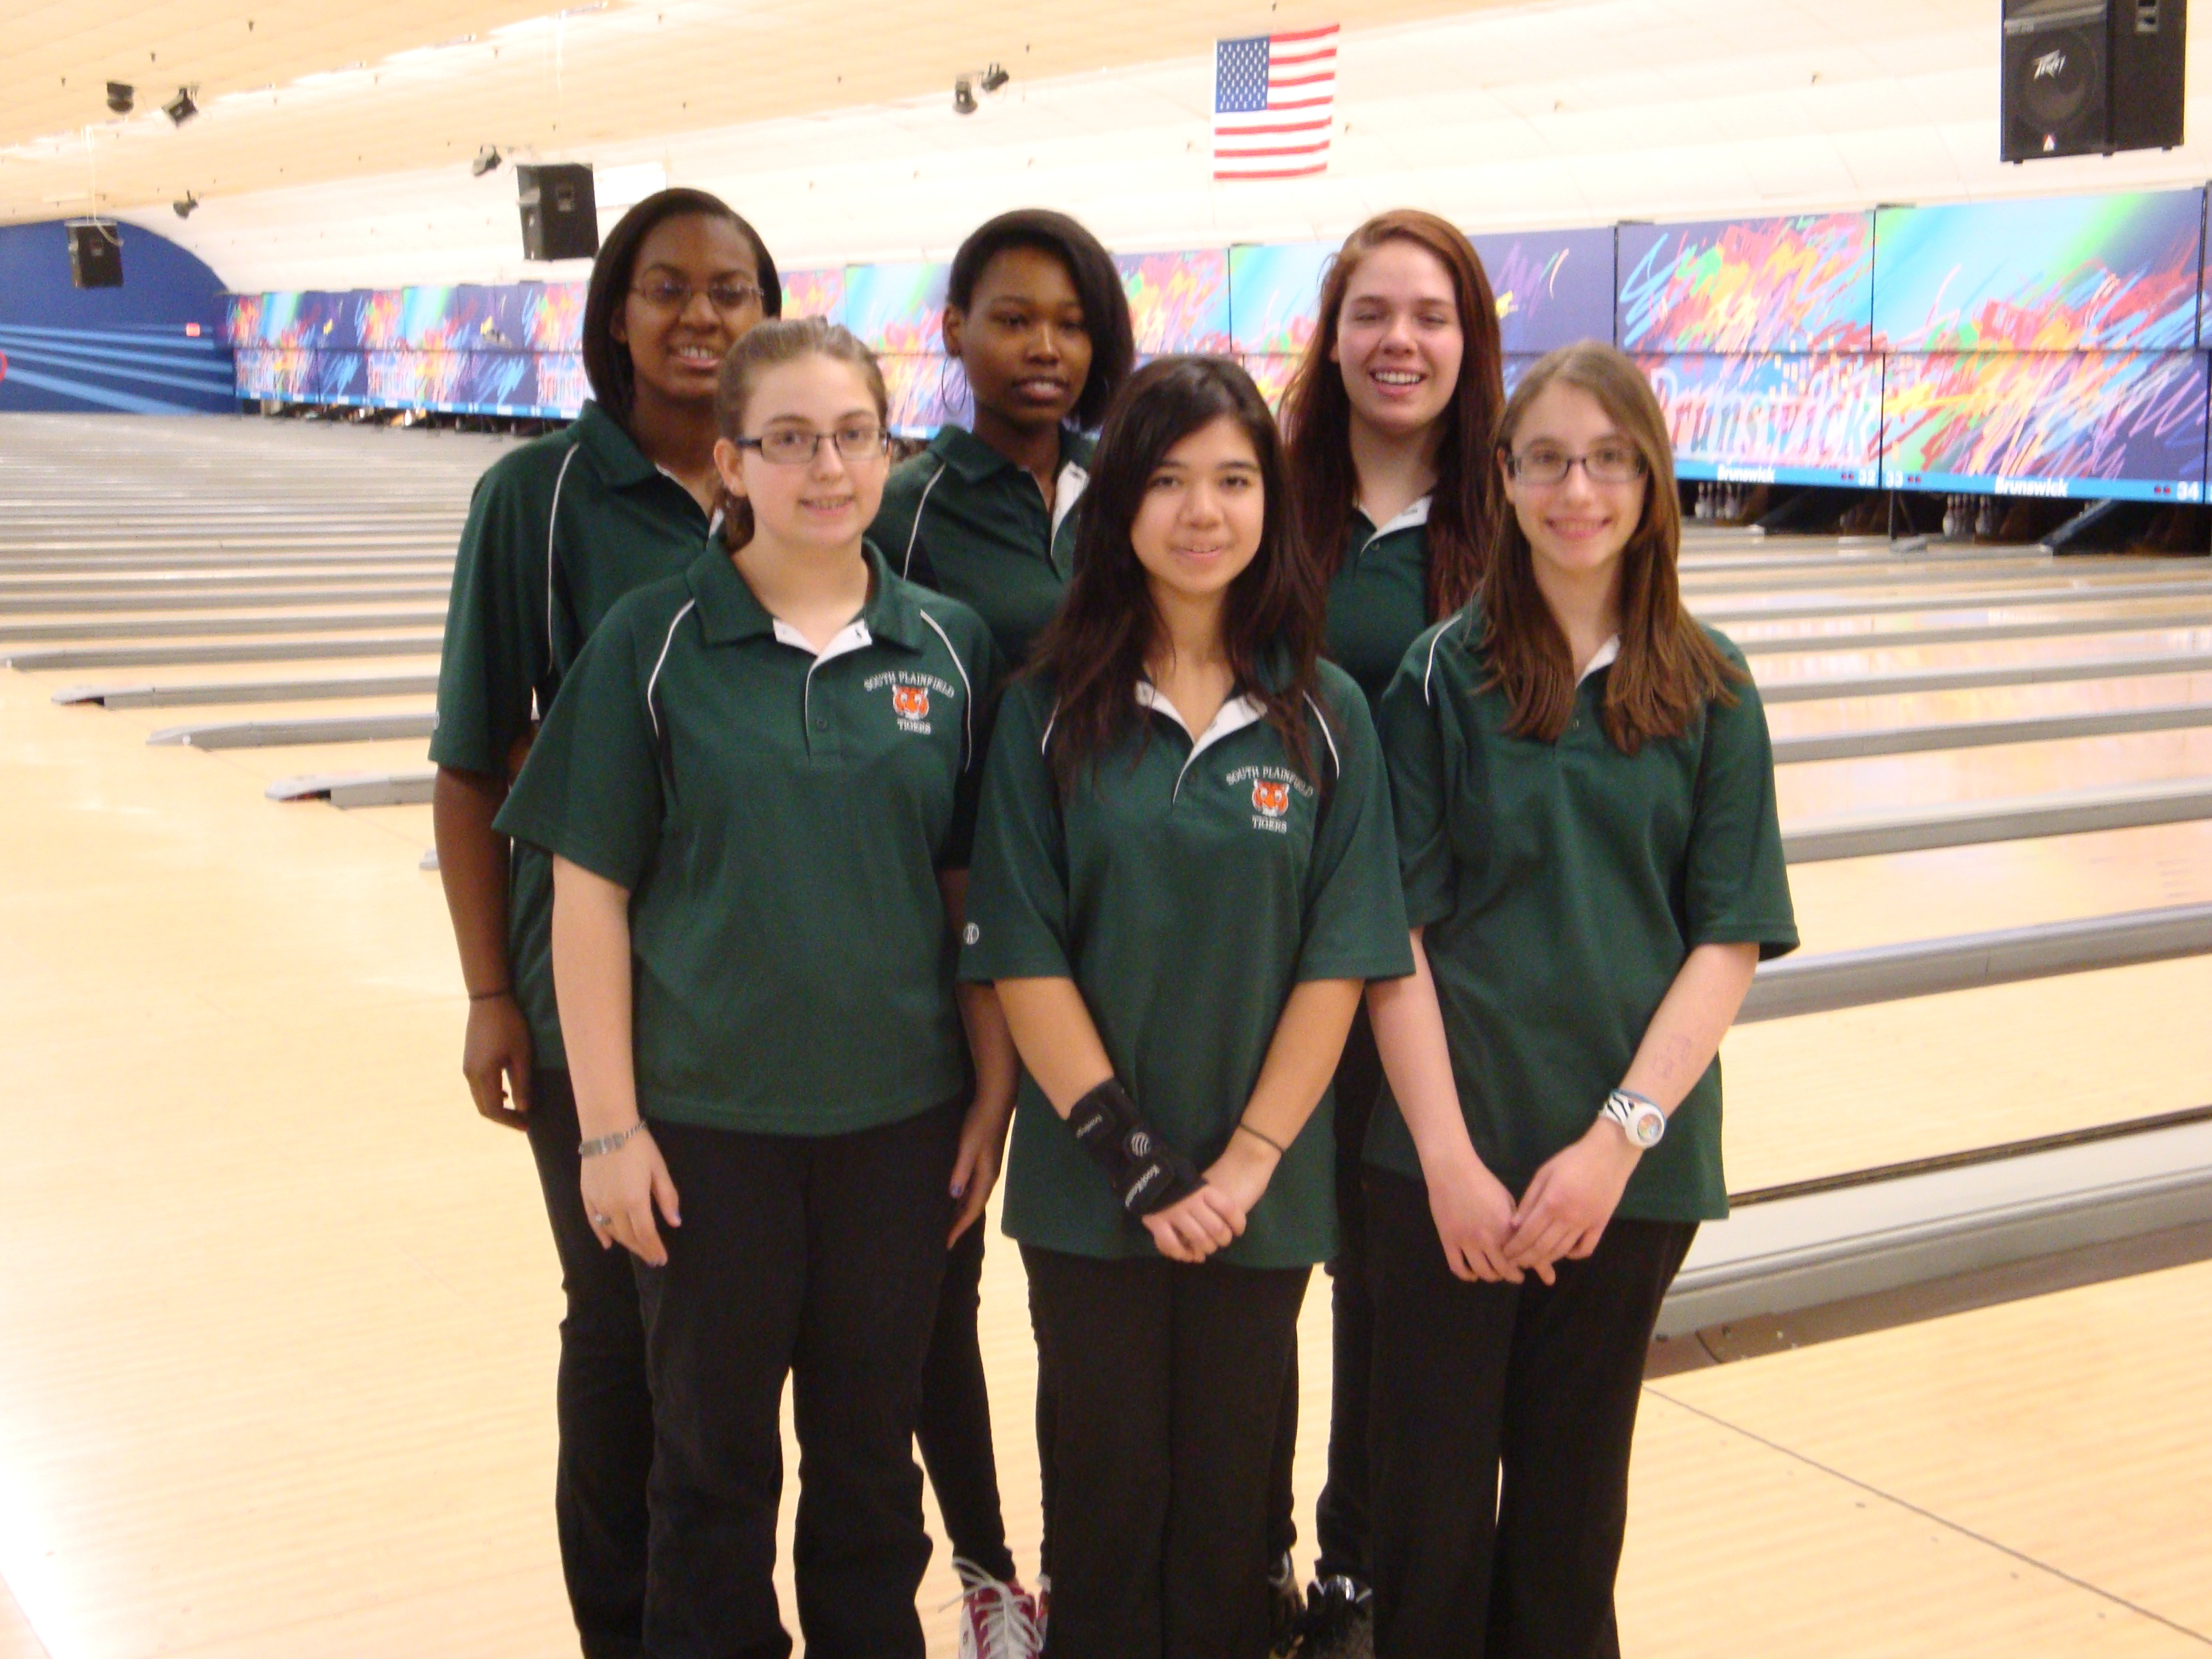 f0a0739382745cbd9532_Girls_Bowling_Team.JPG